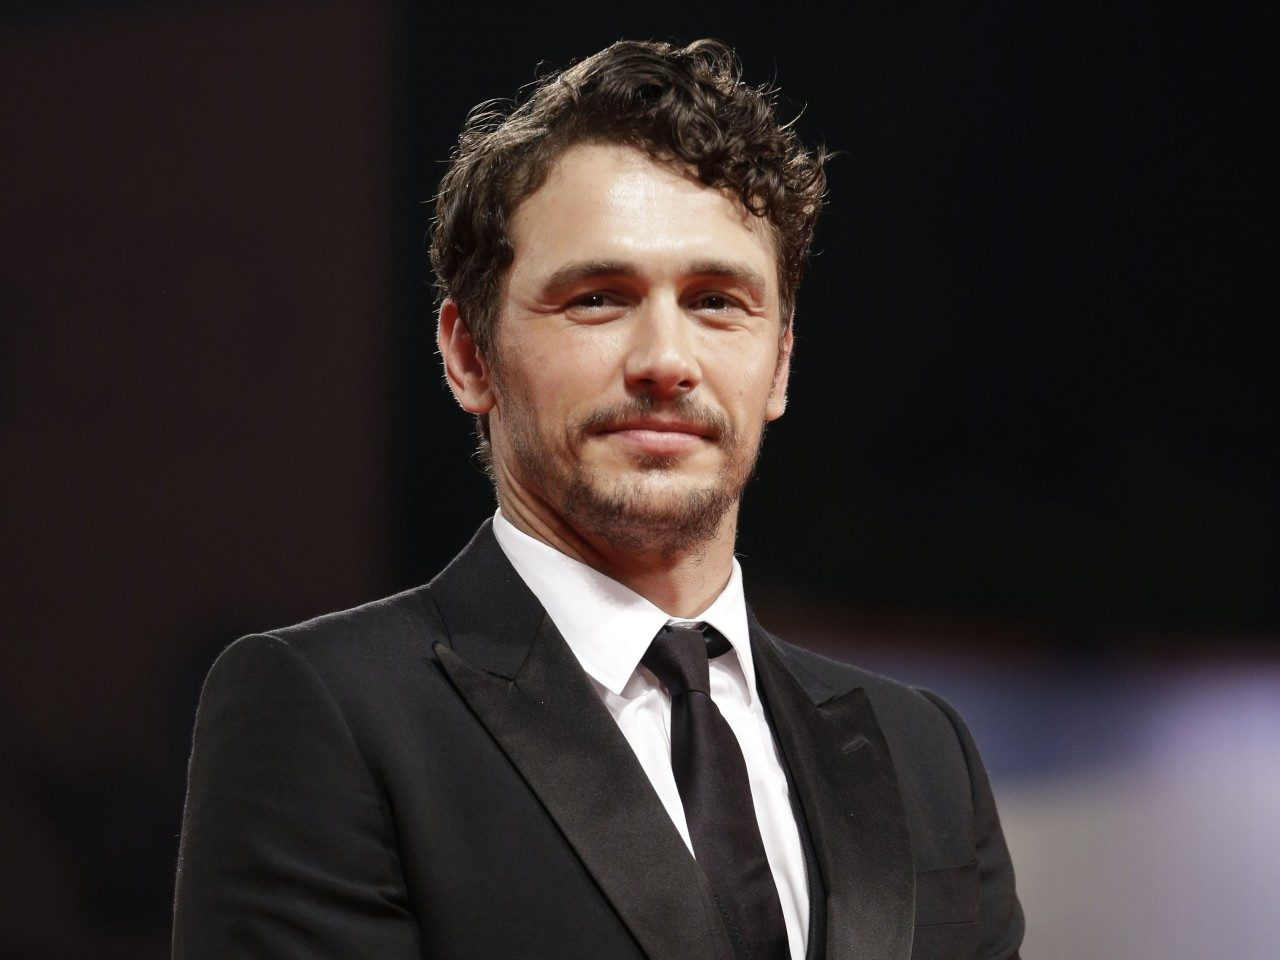 james-franco-height-weight-age-affairs-girlfriend-body-stats-details-3